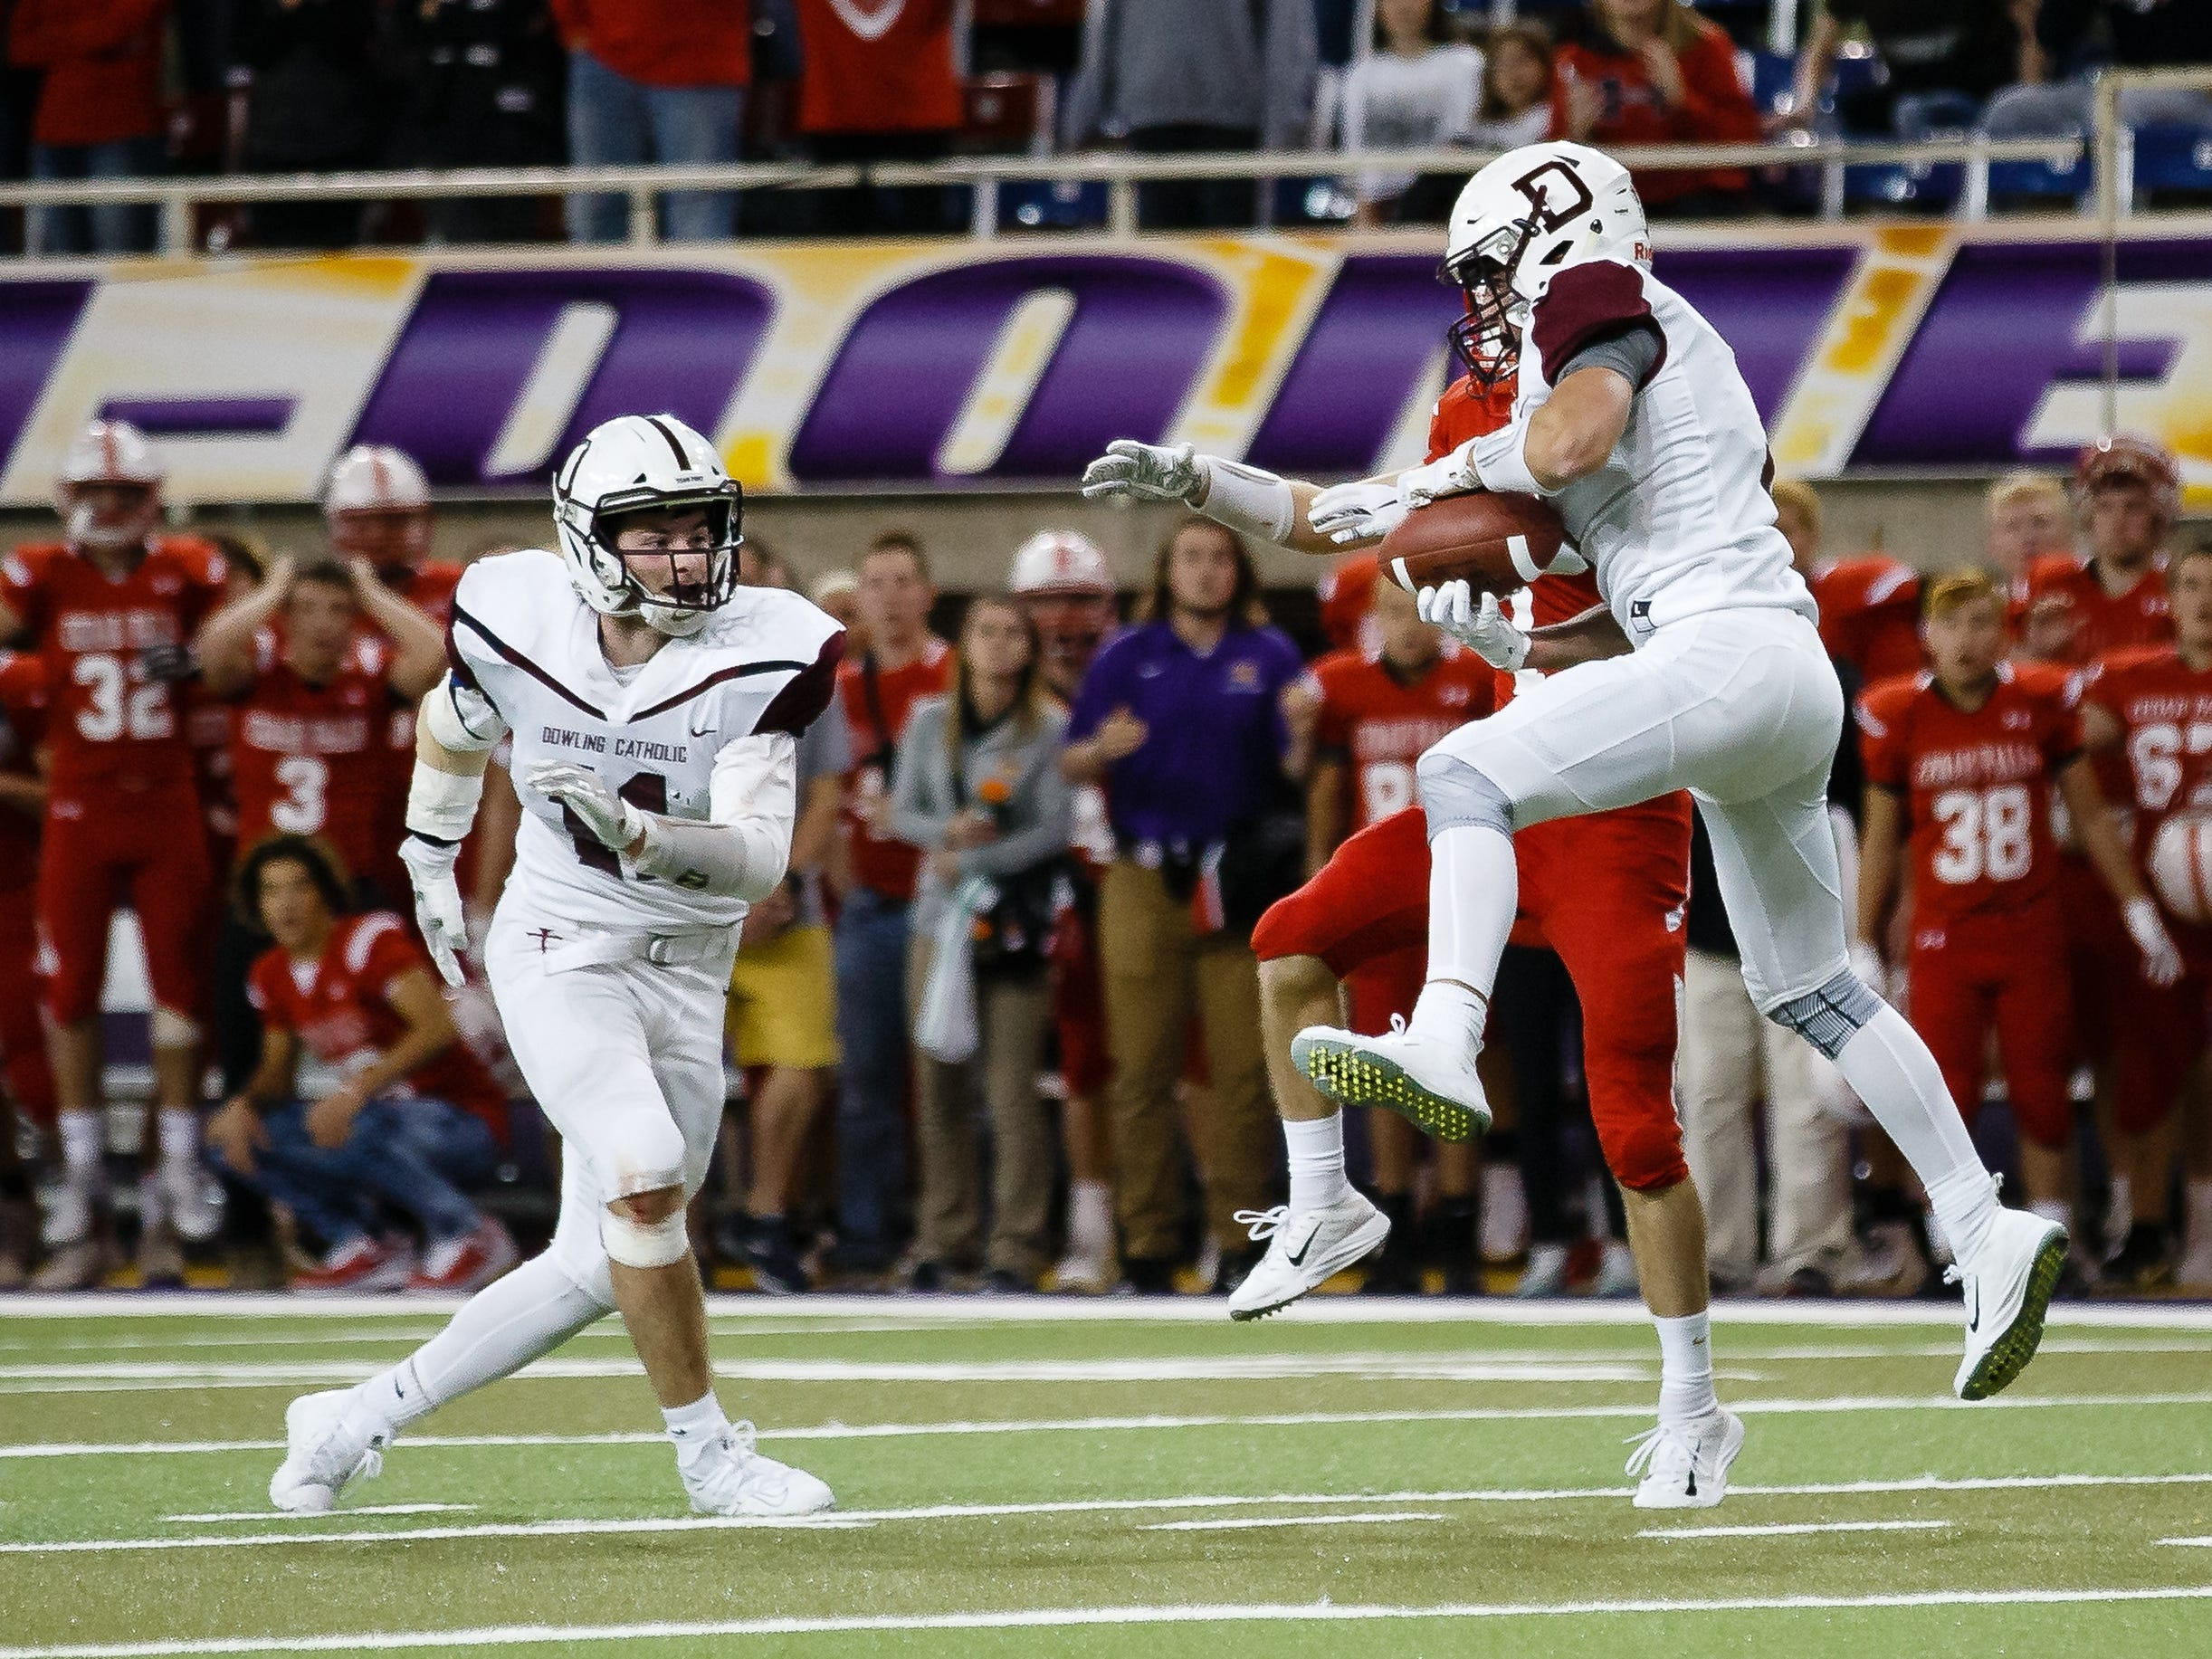 Dowling Catholic's Connor Jackman (7) intercepts a pass to seal the win for Dowling Catholic, 22-16 over Cedar Falls during their class 4A state championship football game on Friday, Nov. 16, 2018, in Cedar Falls.